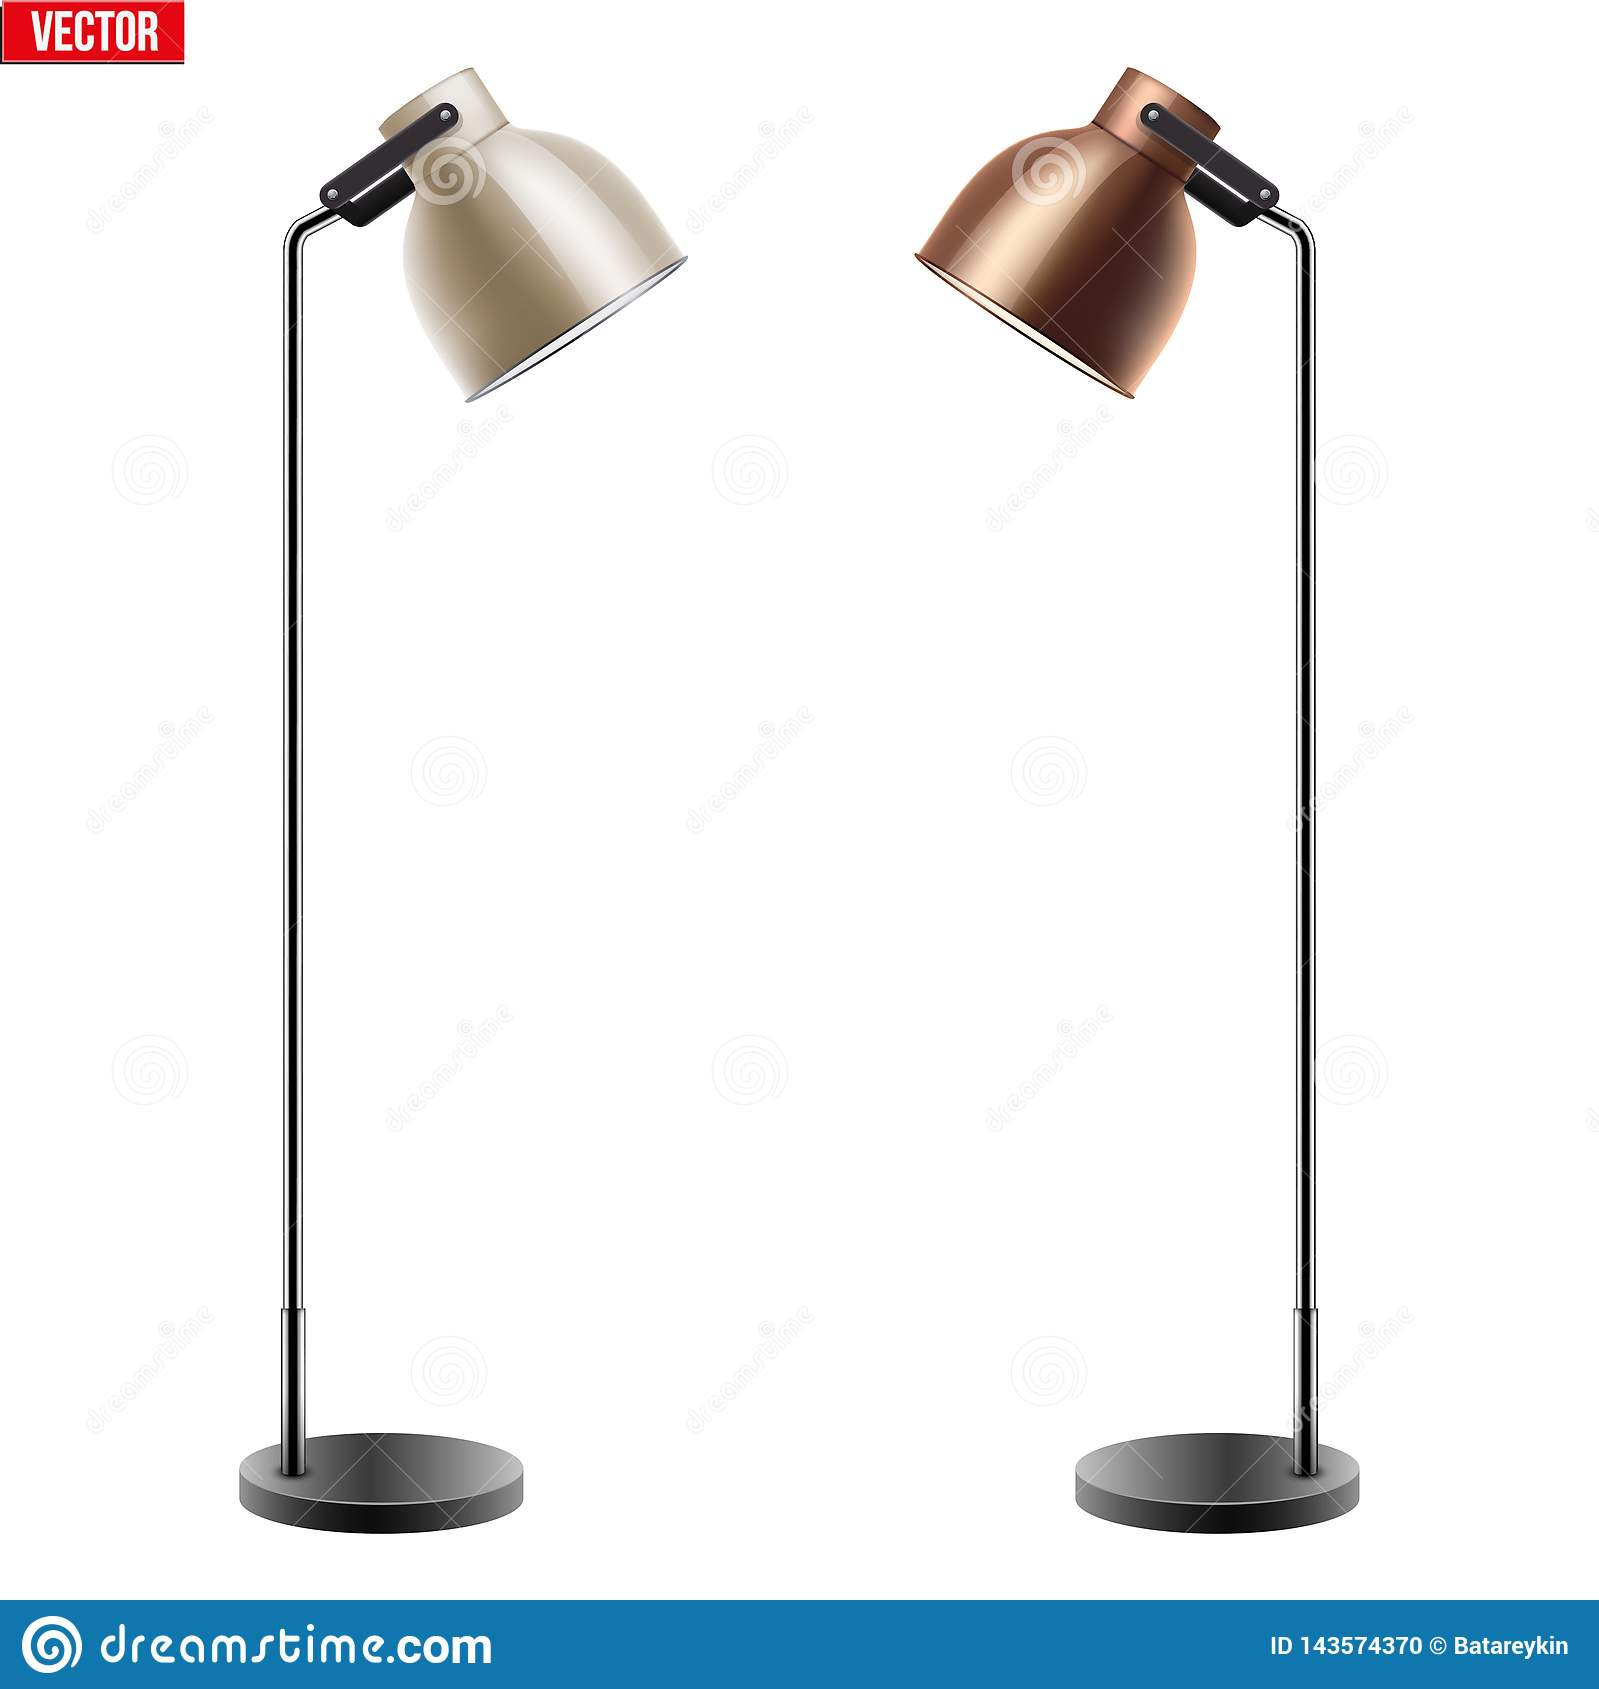 Decorative Metal Floor Lamp Stock Vector Illustration Of